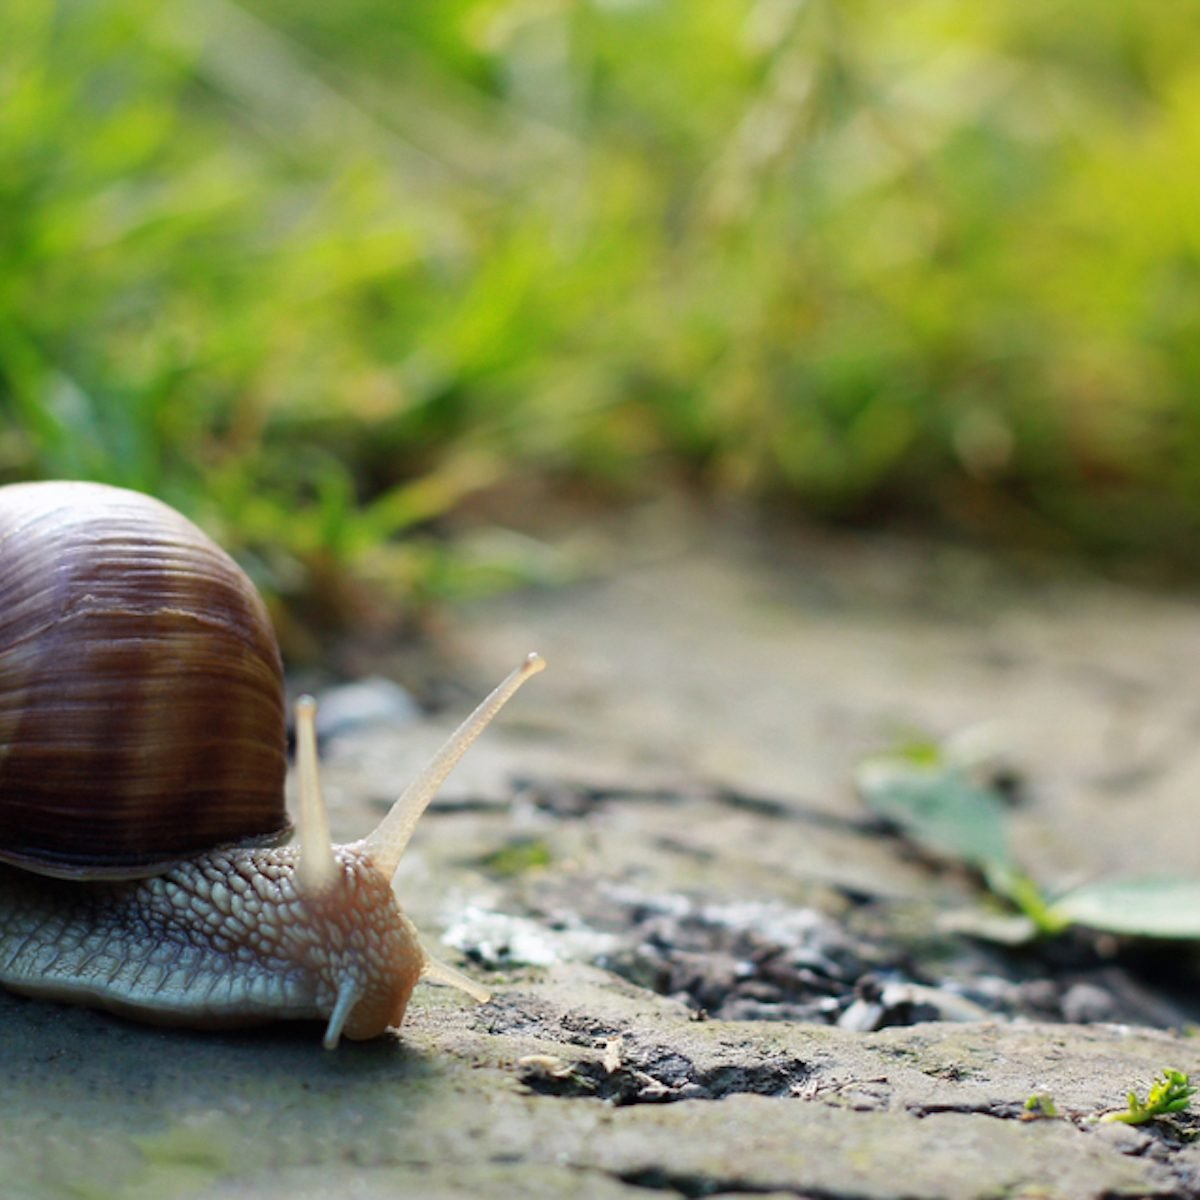 Big snail in shell crawling on road